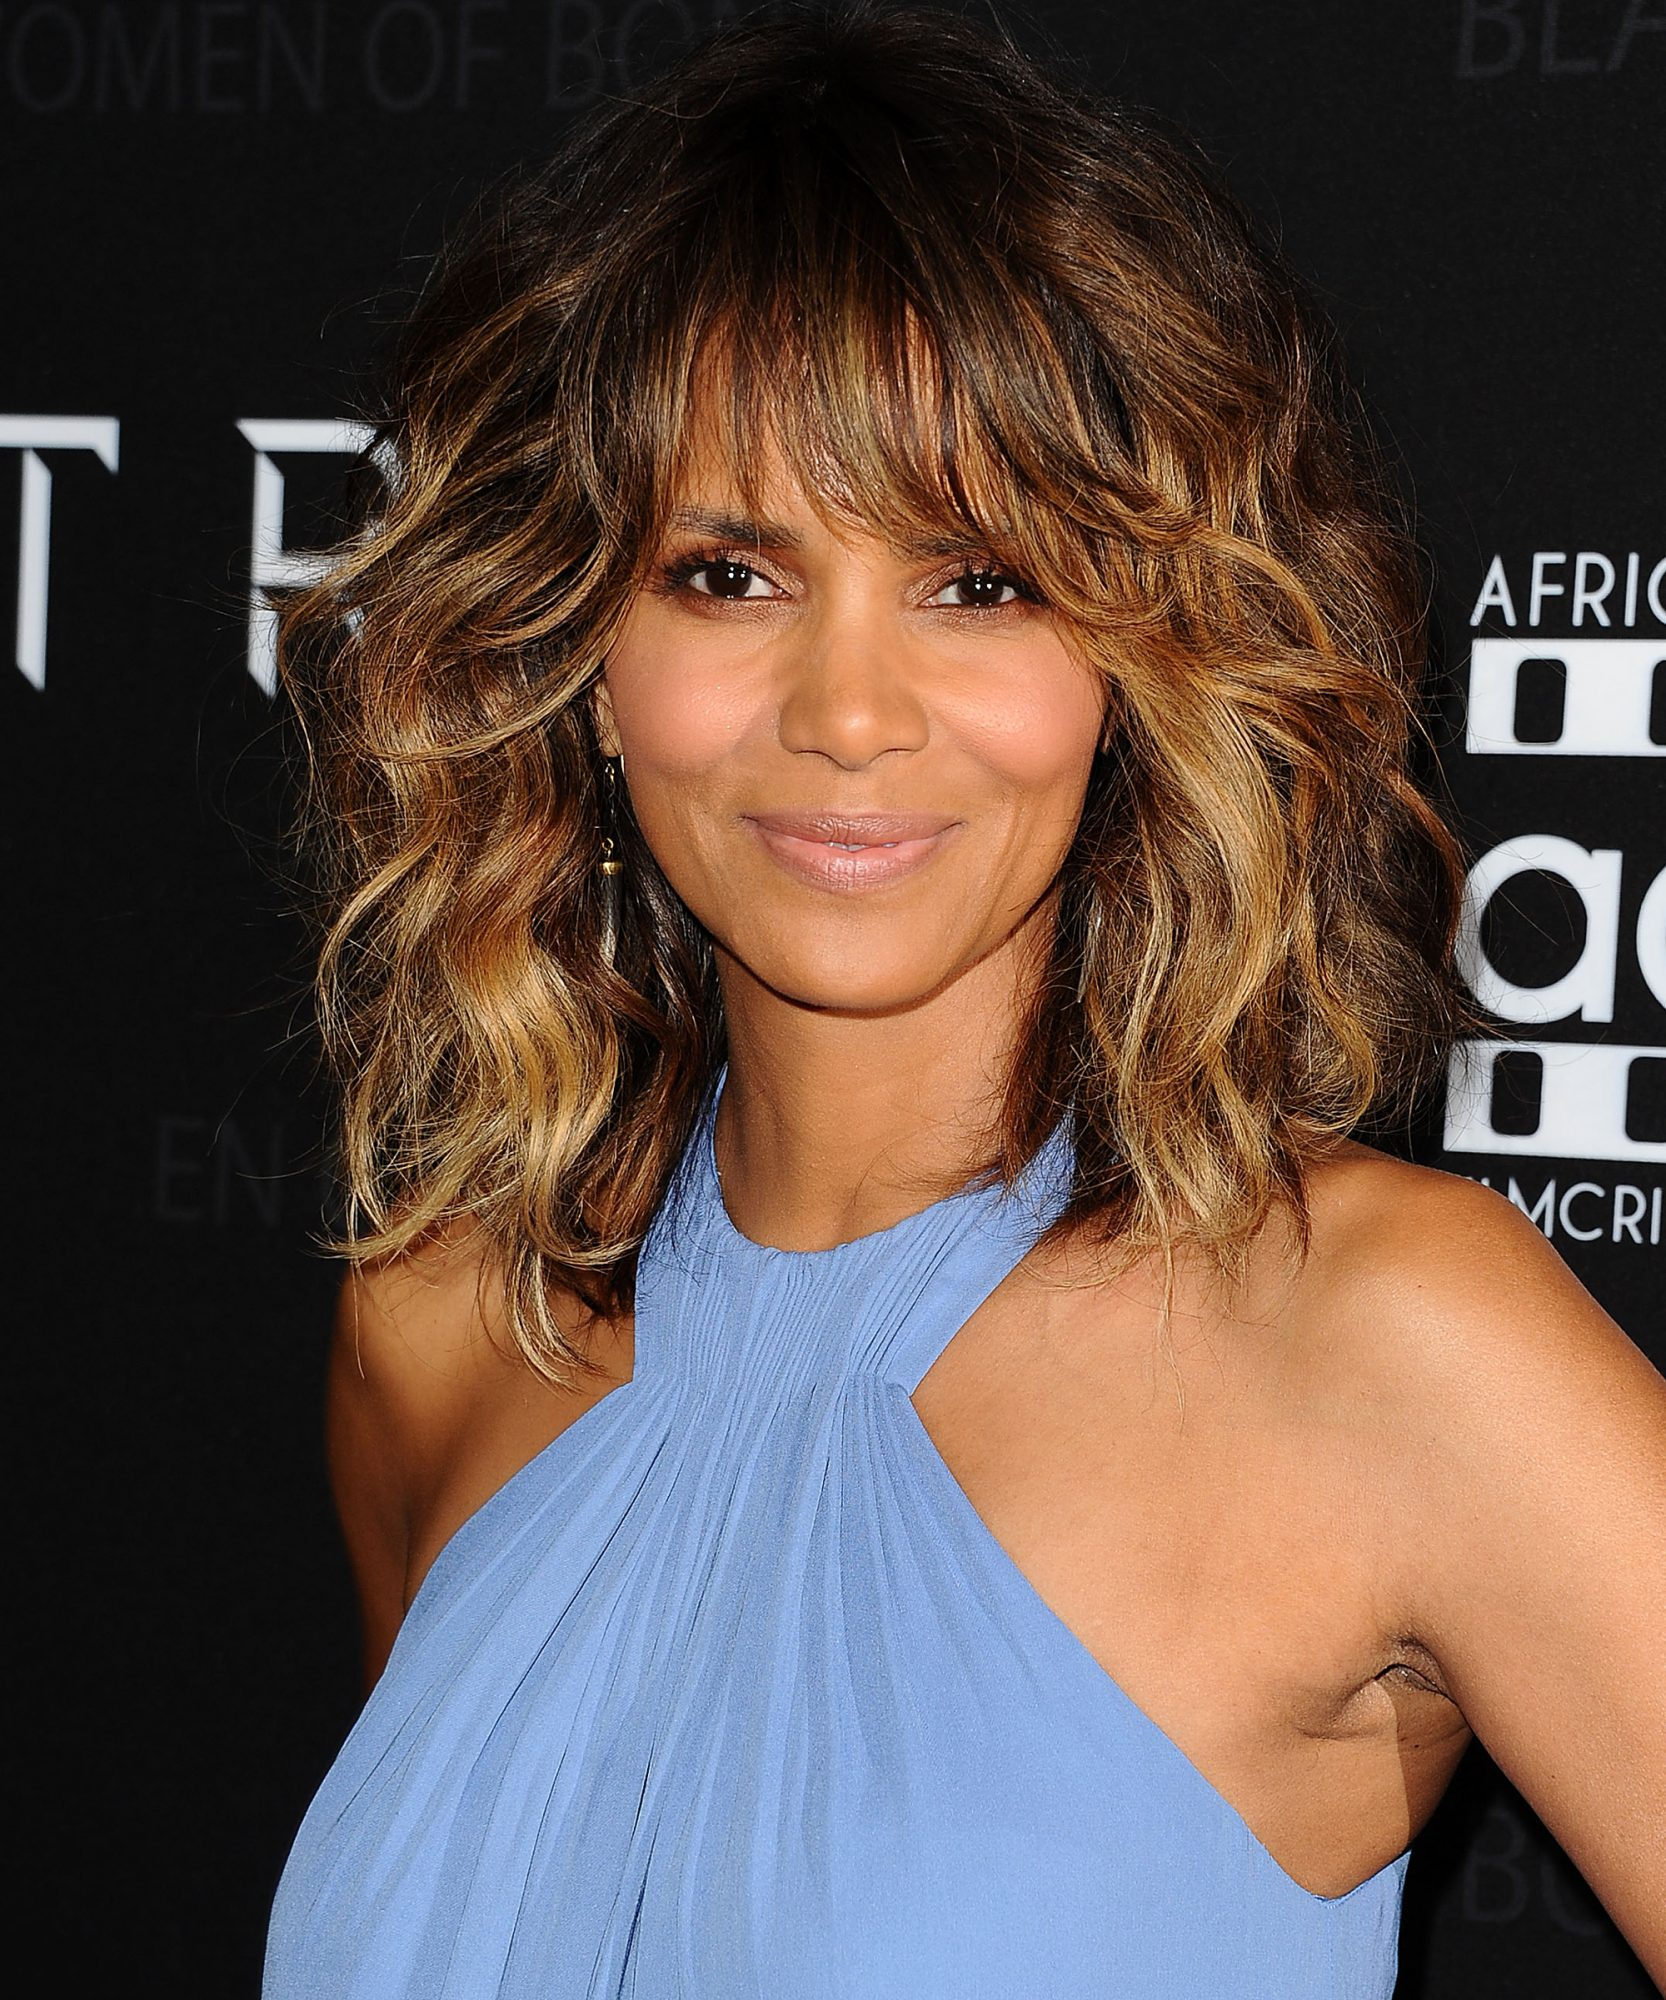 Halle Berry Shares Rare Photo Of Her Two Adorable Kids